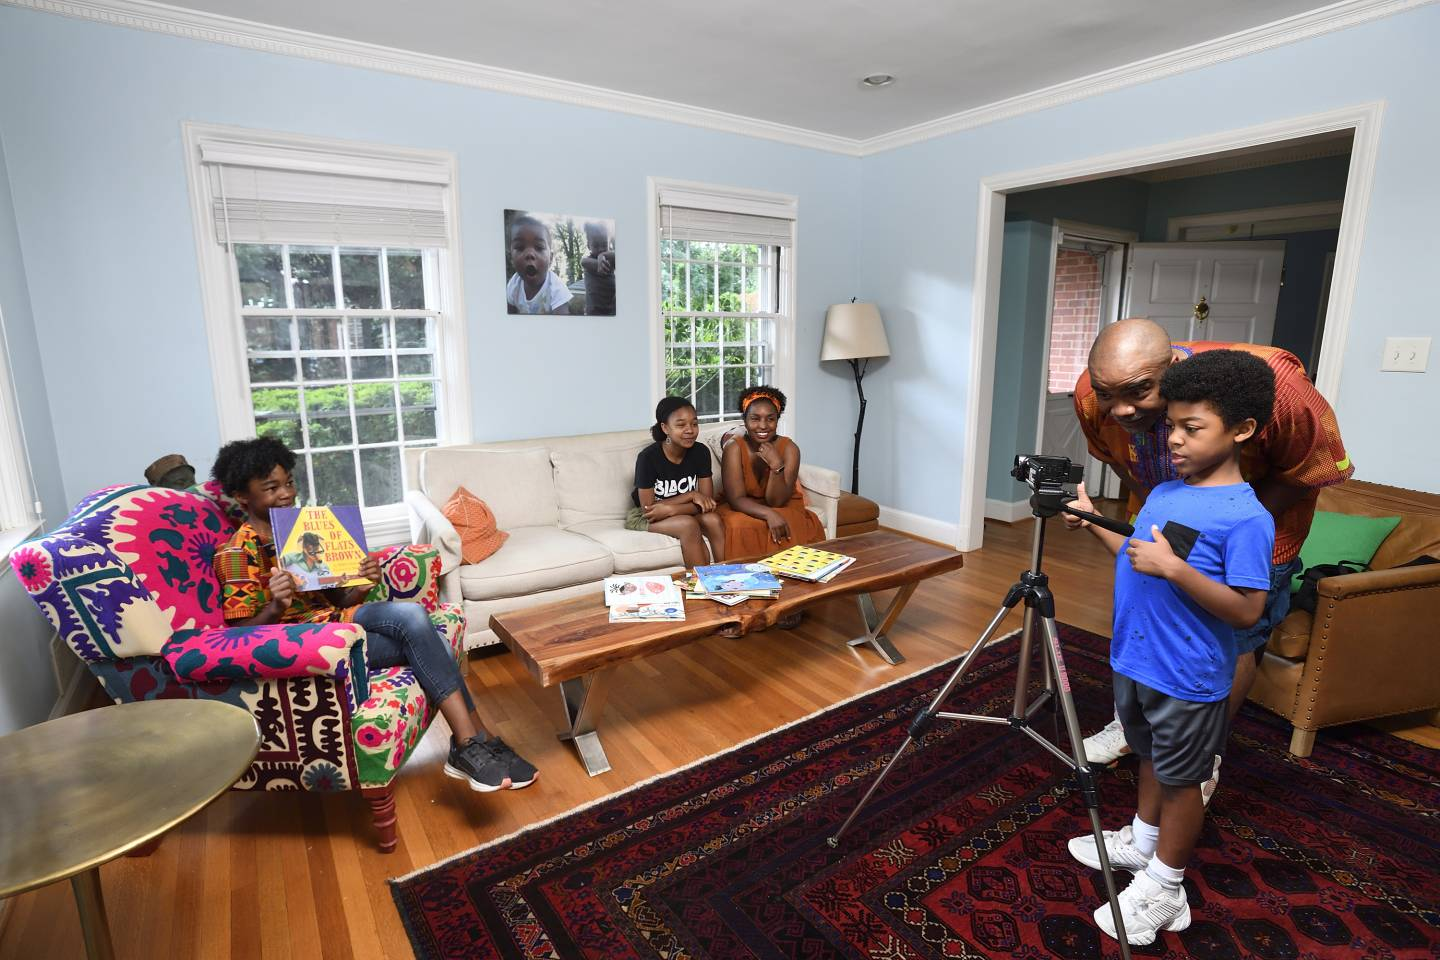 A family records a video in their living room